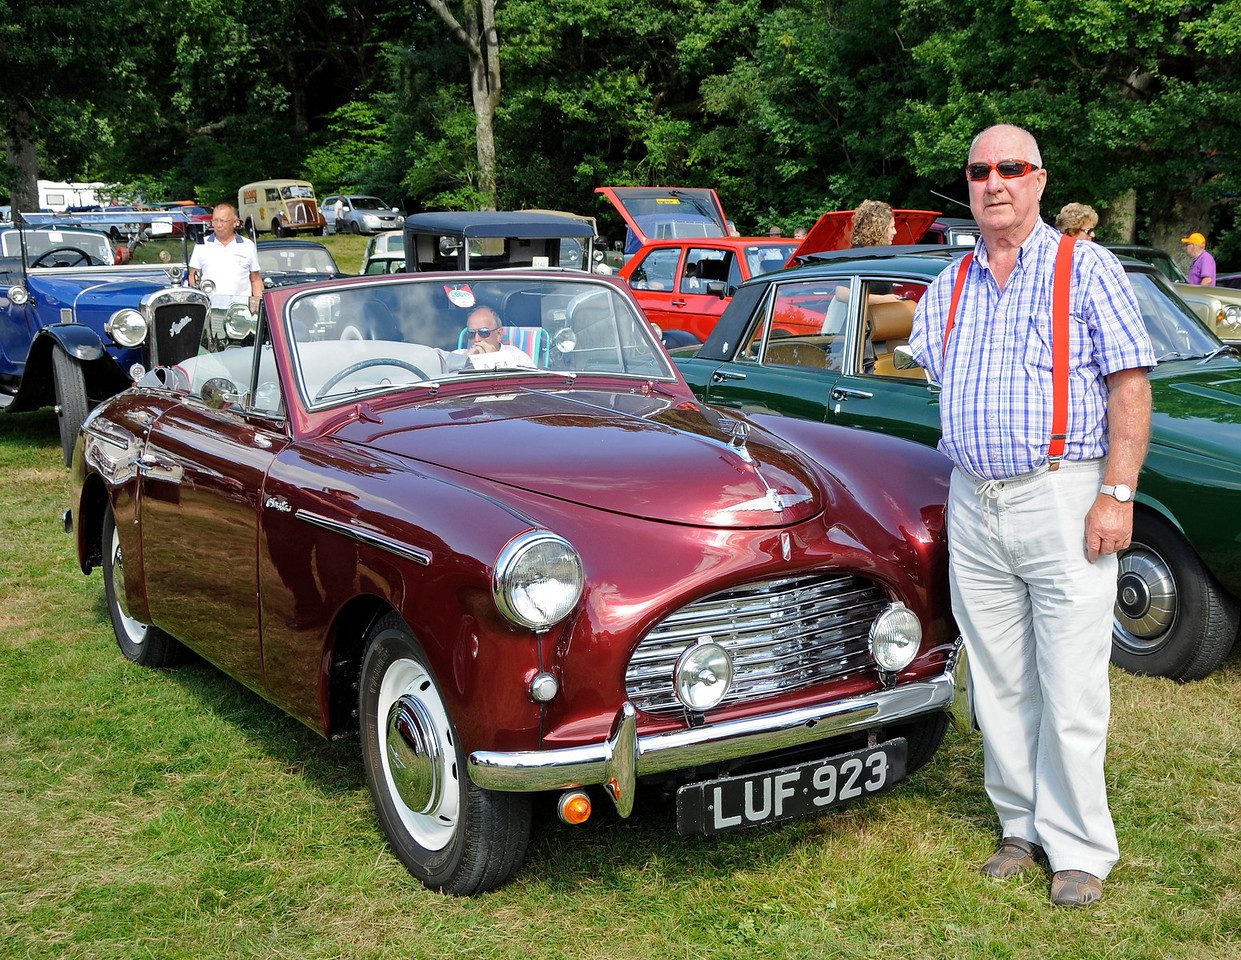 Best in Show was an Austin A40, LUF923, owned by George Jeary.  Vintage Transport Weekend, Horsted Keynes, 14.08.2016  16242